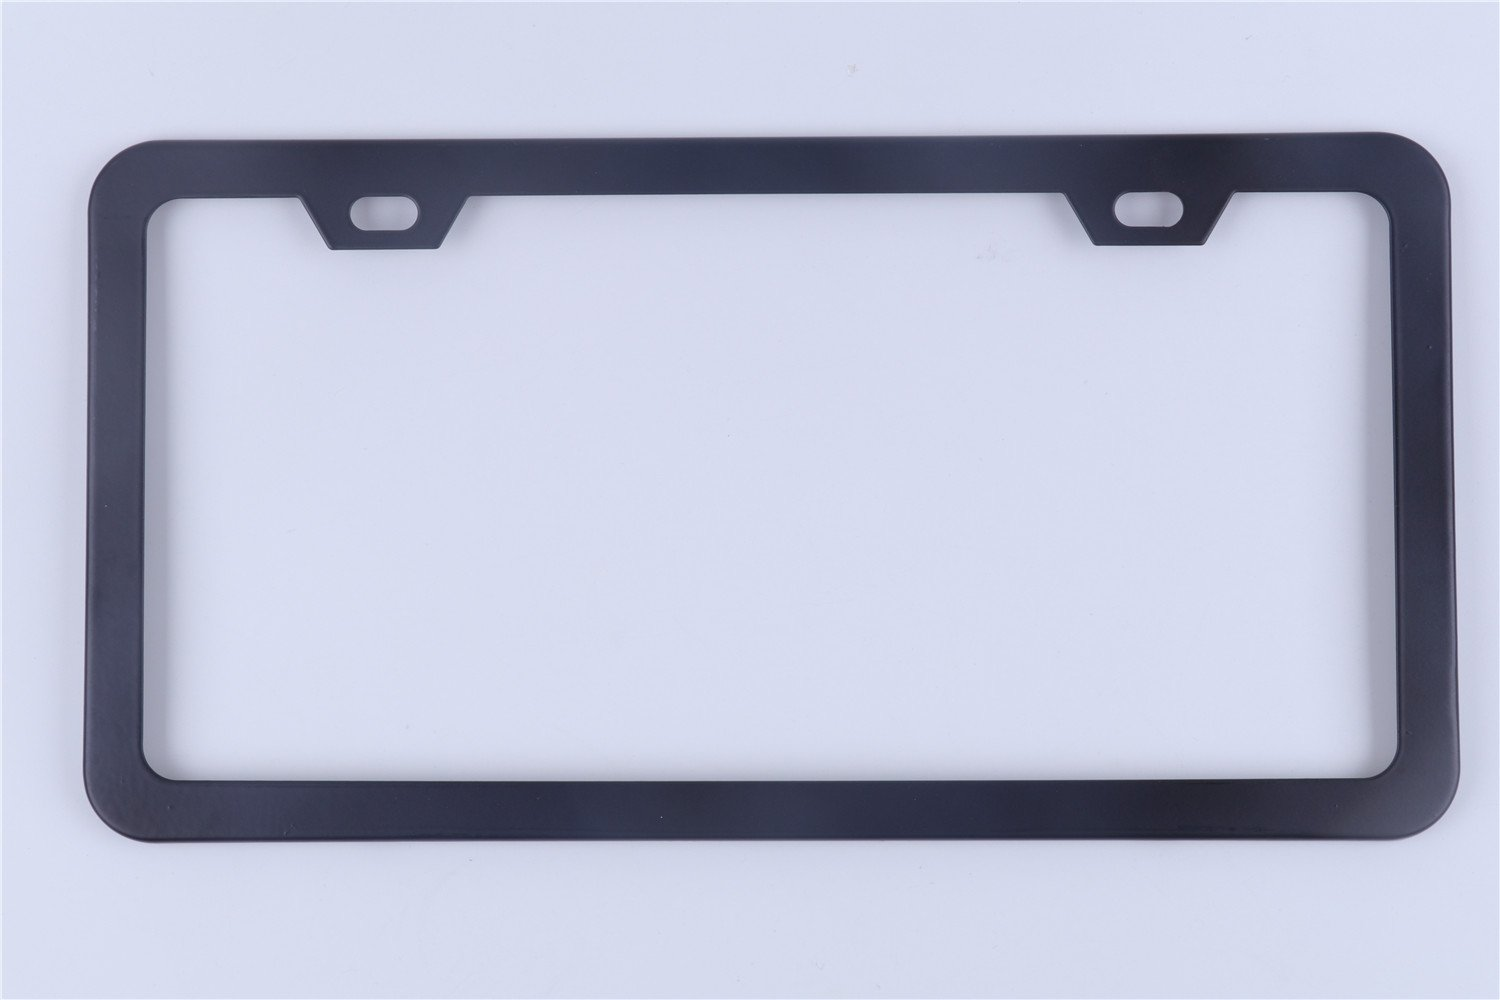 Tokept Black Stainless Steel License Plate Frame 2 Holes with Cushion,Do not Block Tag Pack of 2